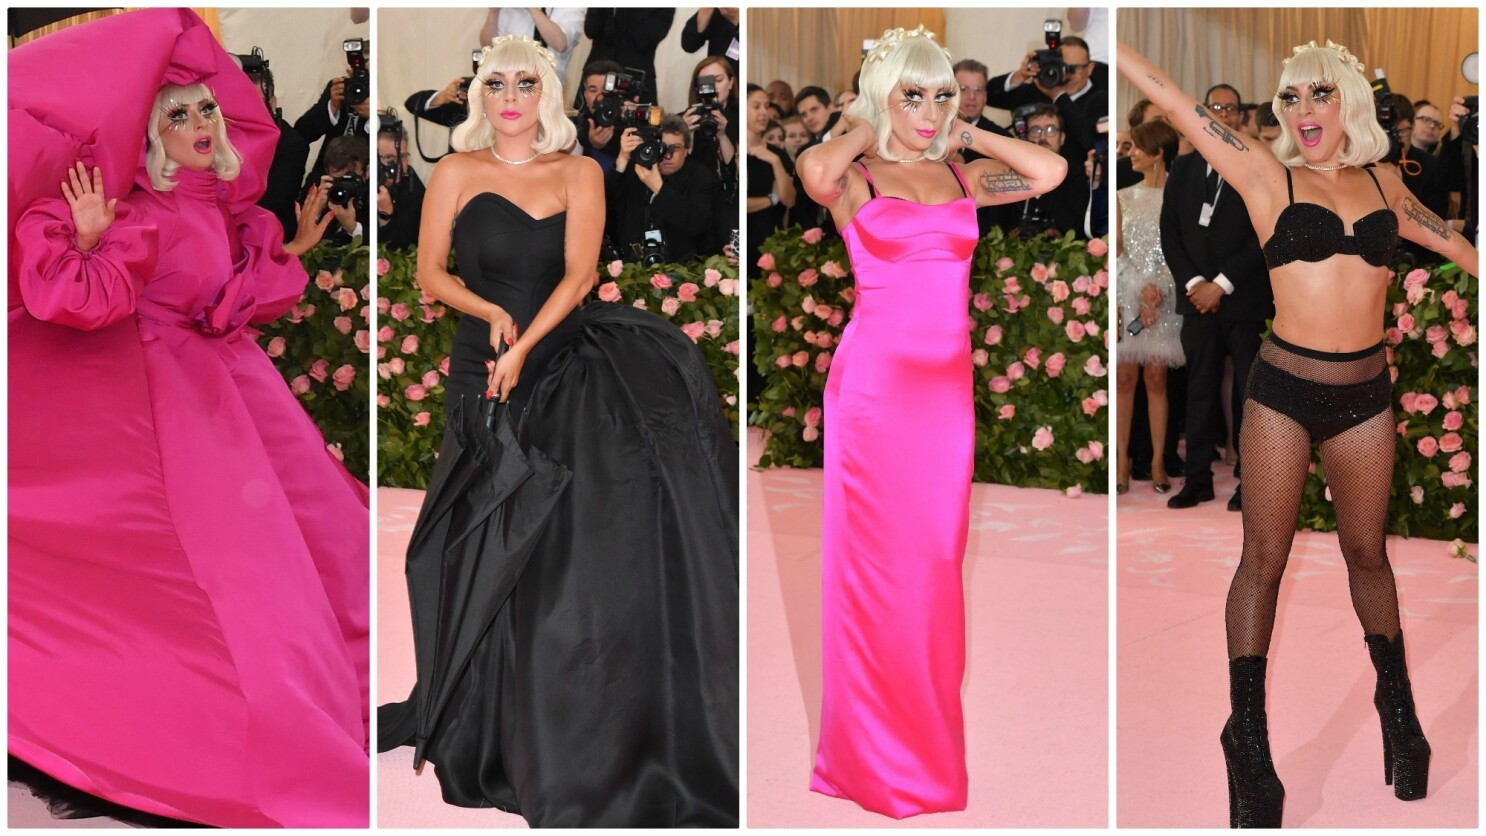 At The Met Gala Lady Gaga Again Gives A Master Class In How To Rule The Red Carpet Los Angeles Times